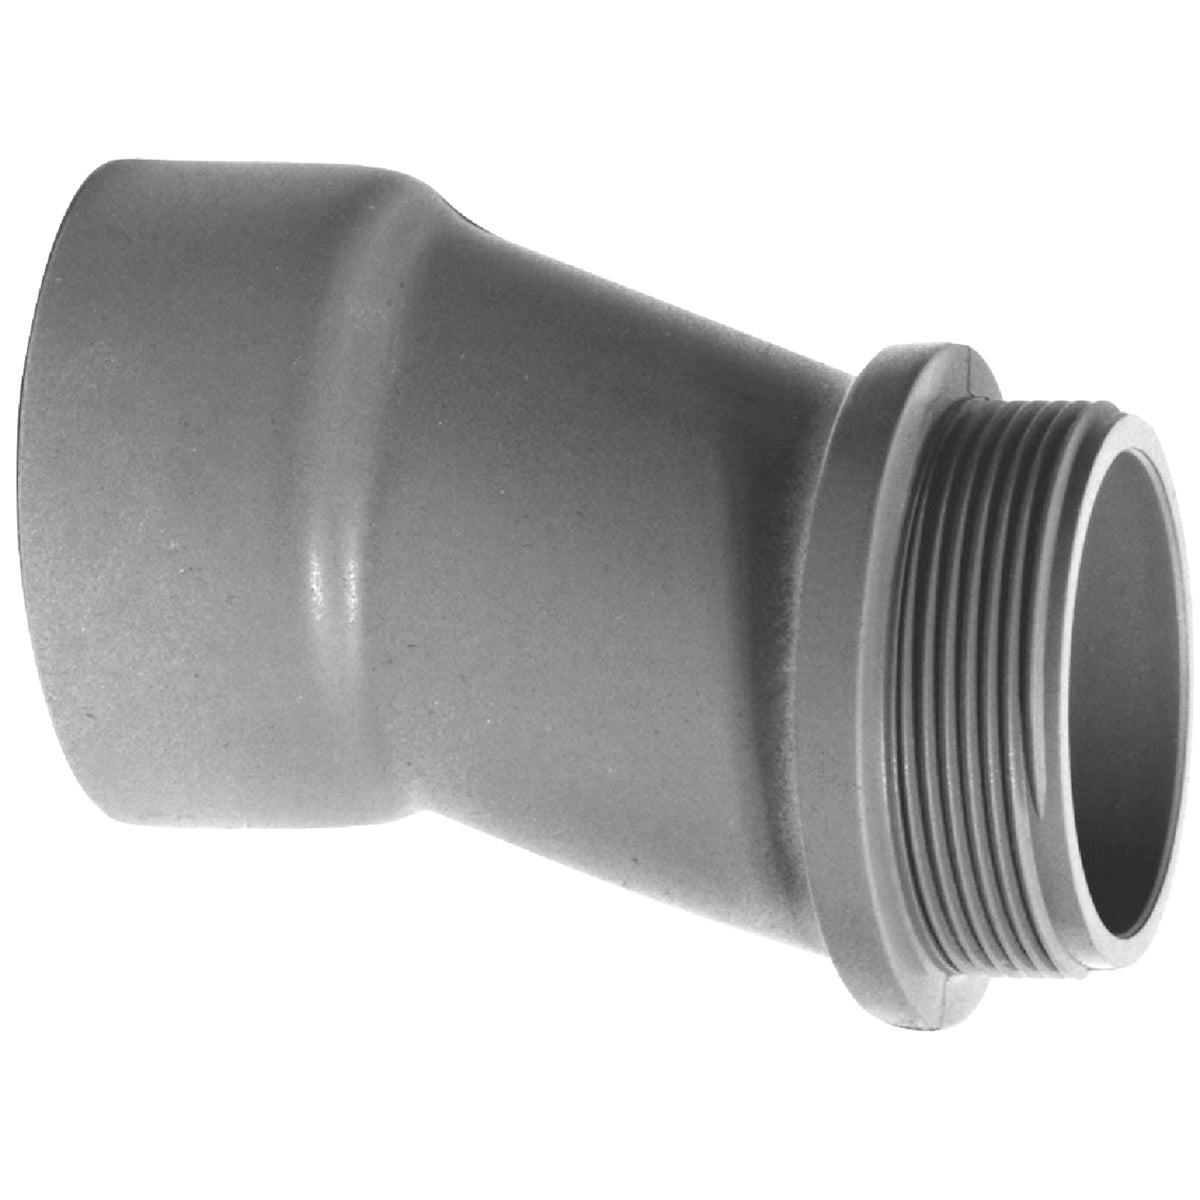 Offset Meter Connector